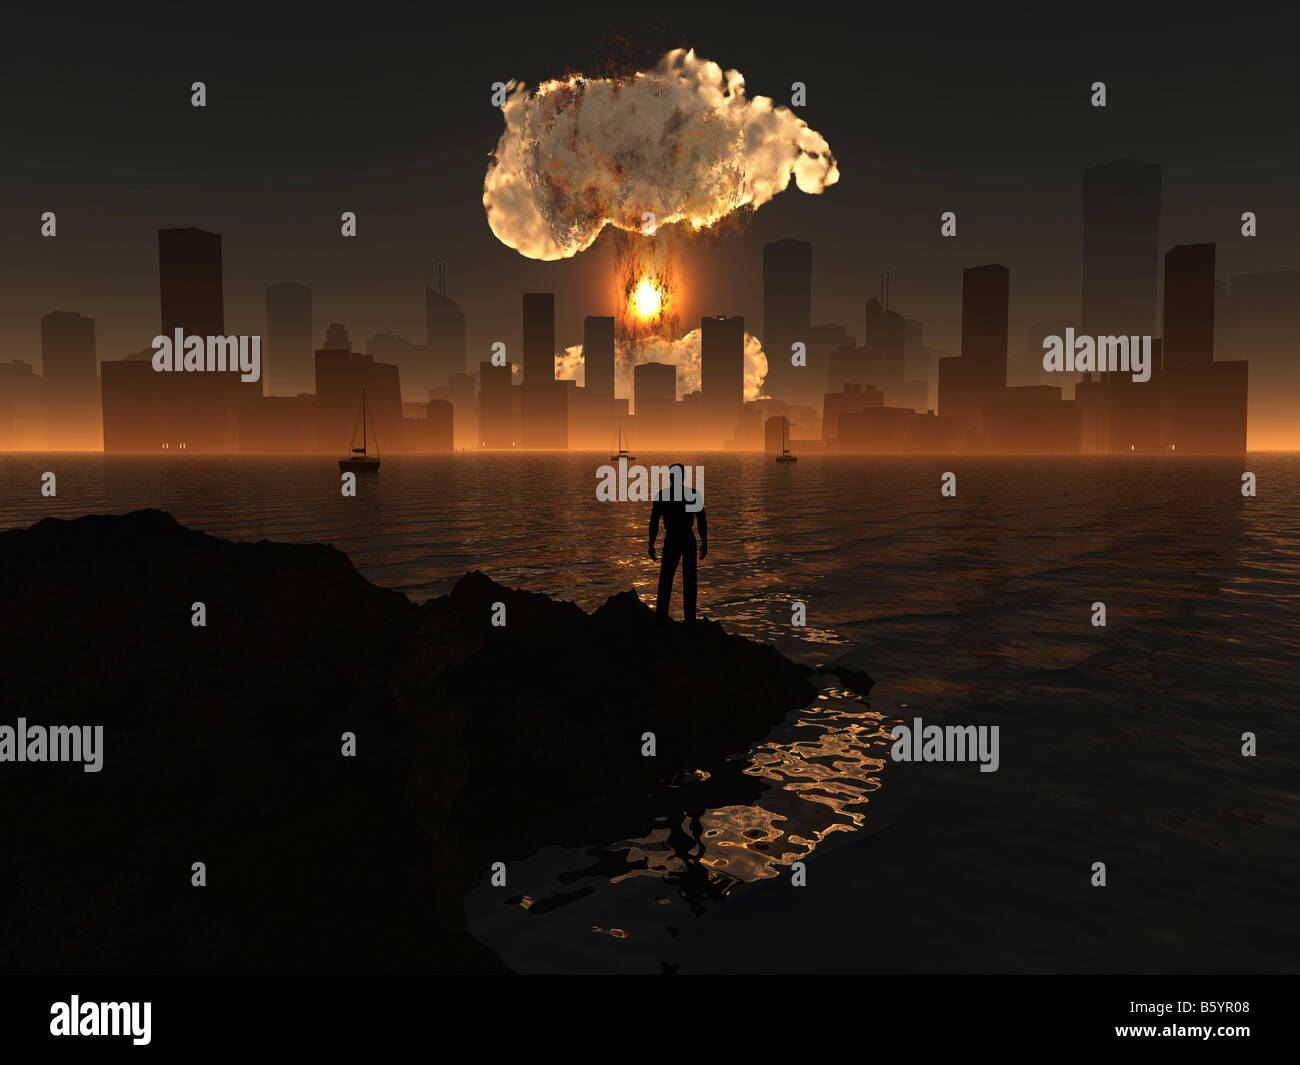 A Nuclear Bomb Exploding In A City Either a Missile Attack Or A Terrorist Bomb - Stock Image